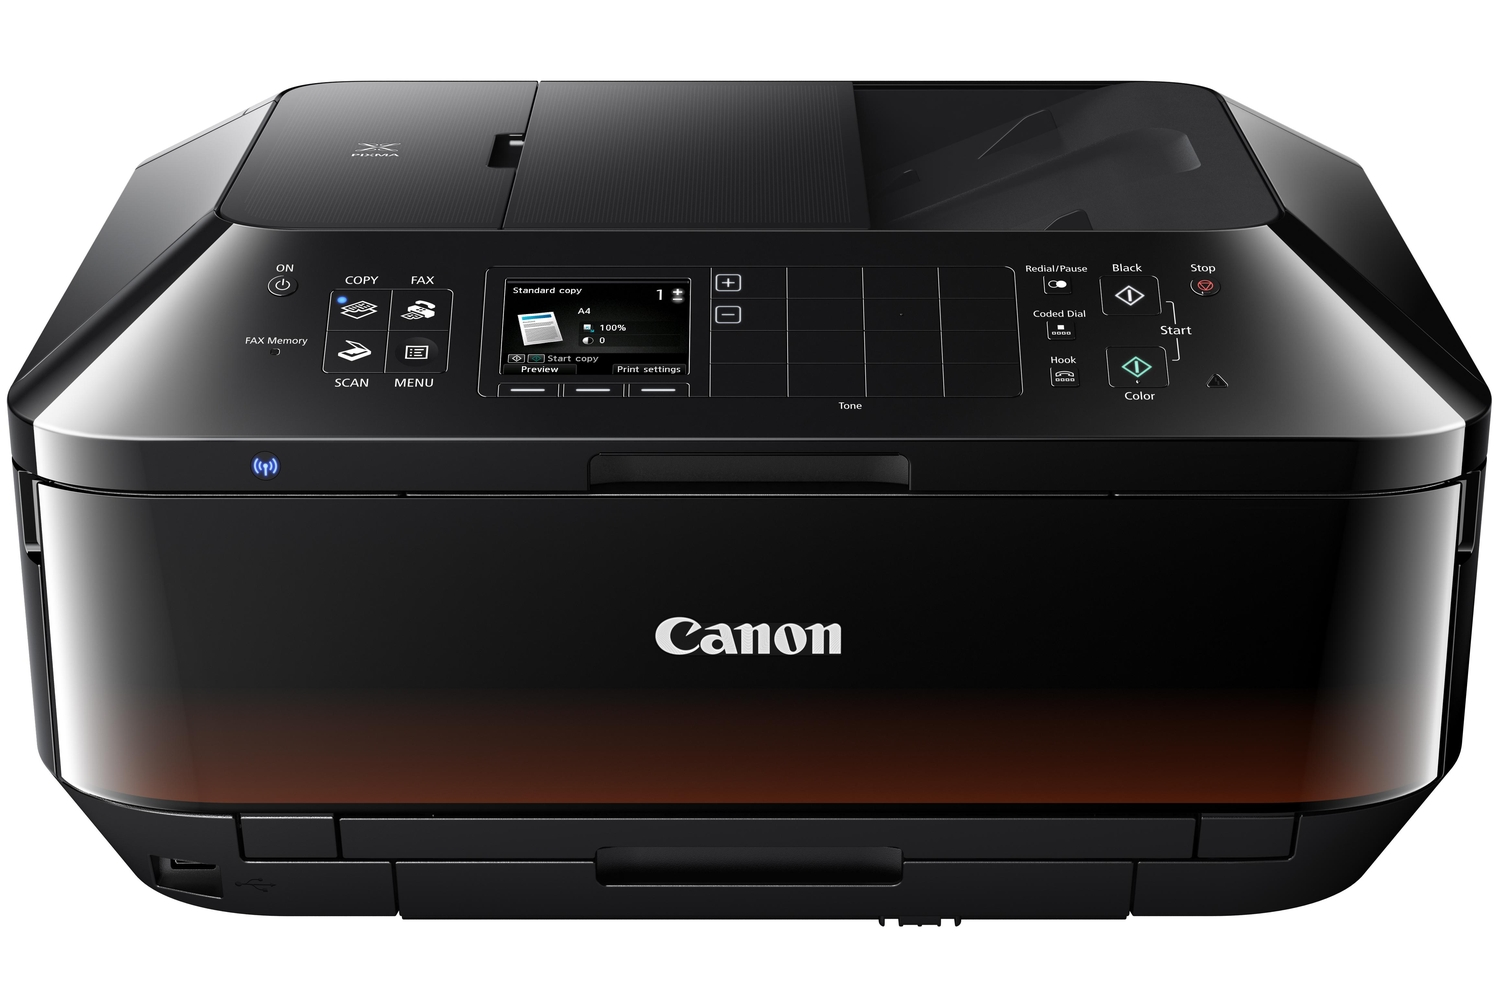 canon pixma mx926 review this high end office inkjet is quick quiet and can do just about. Black Bedroom Furniture Sets. Home Design Ideas